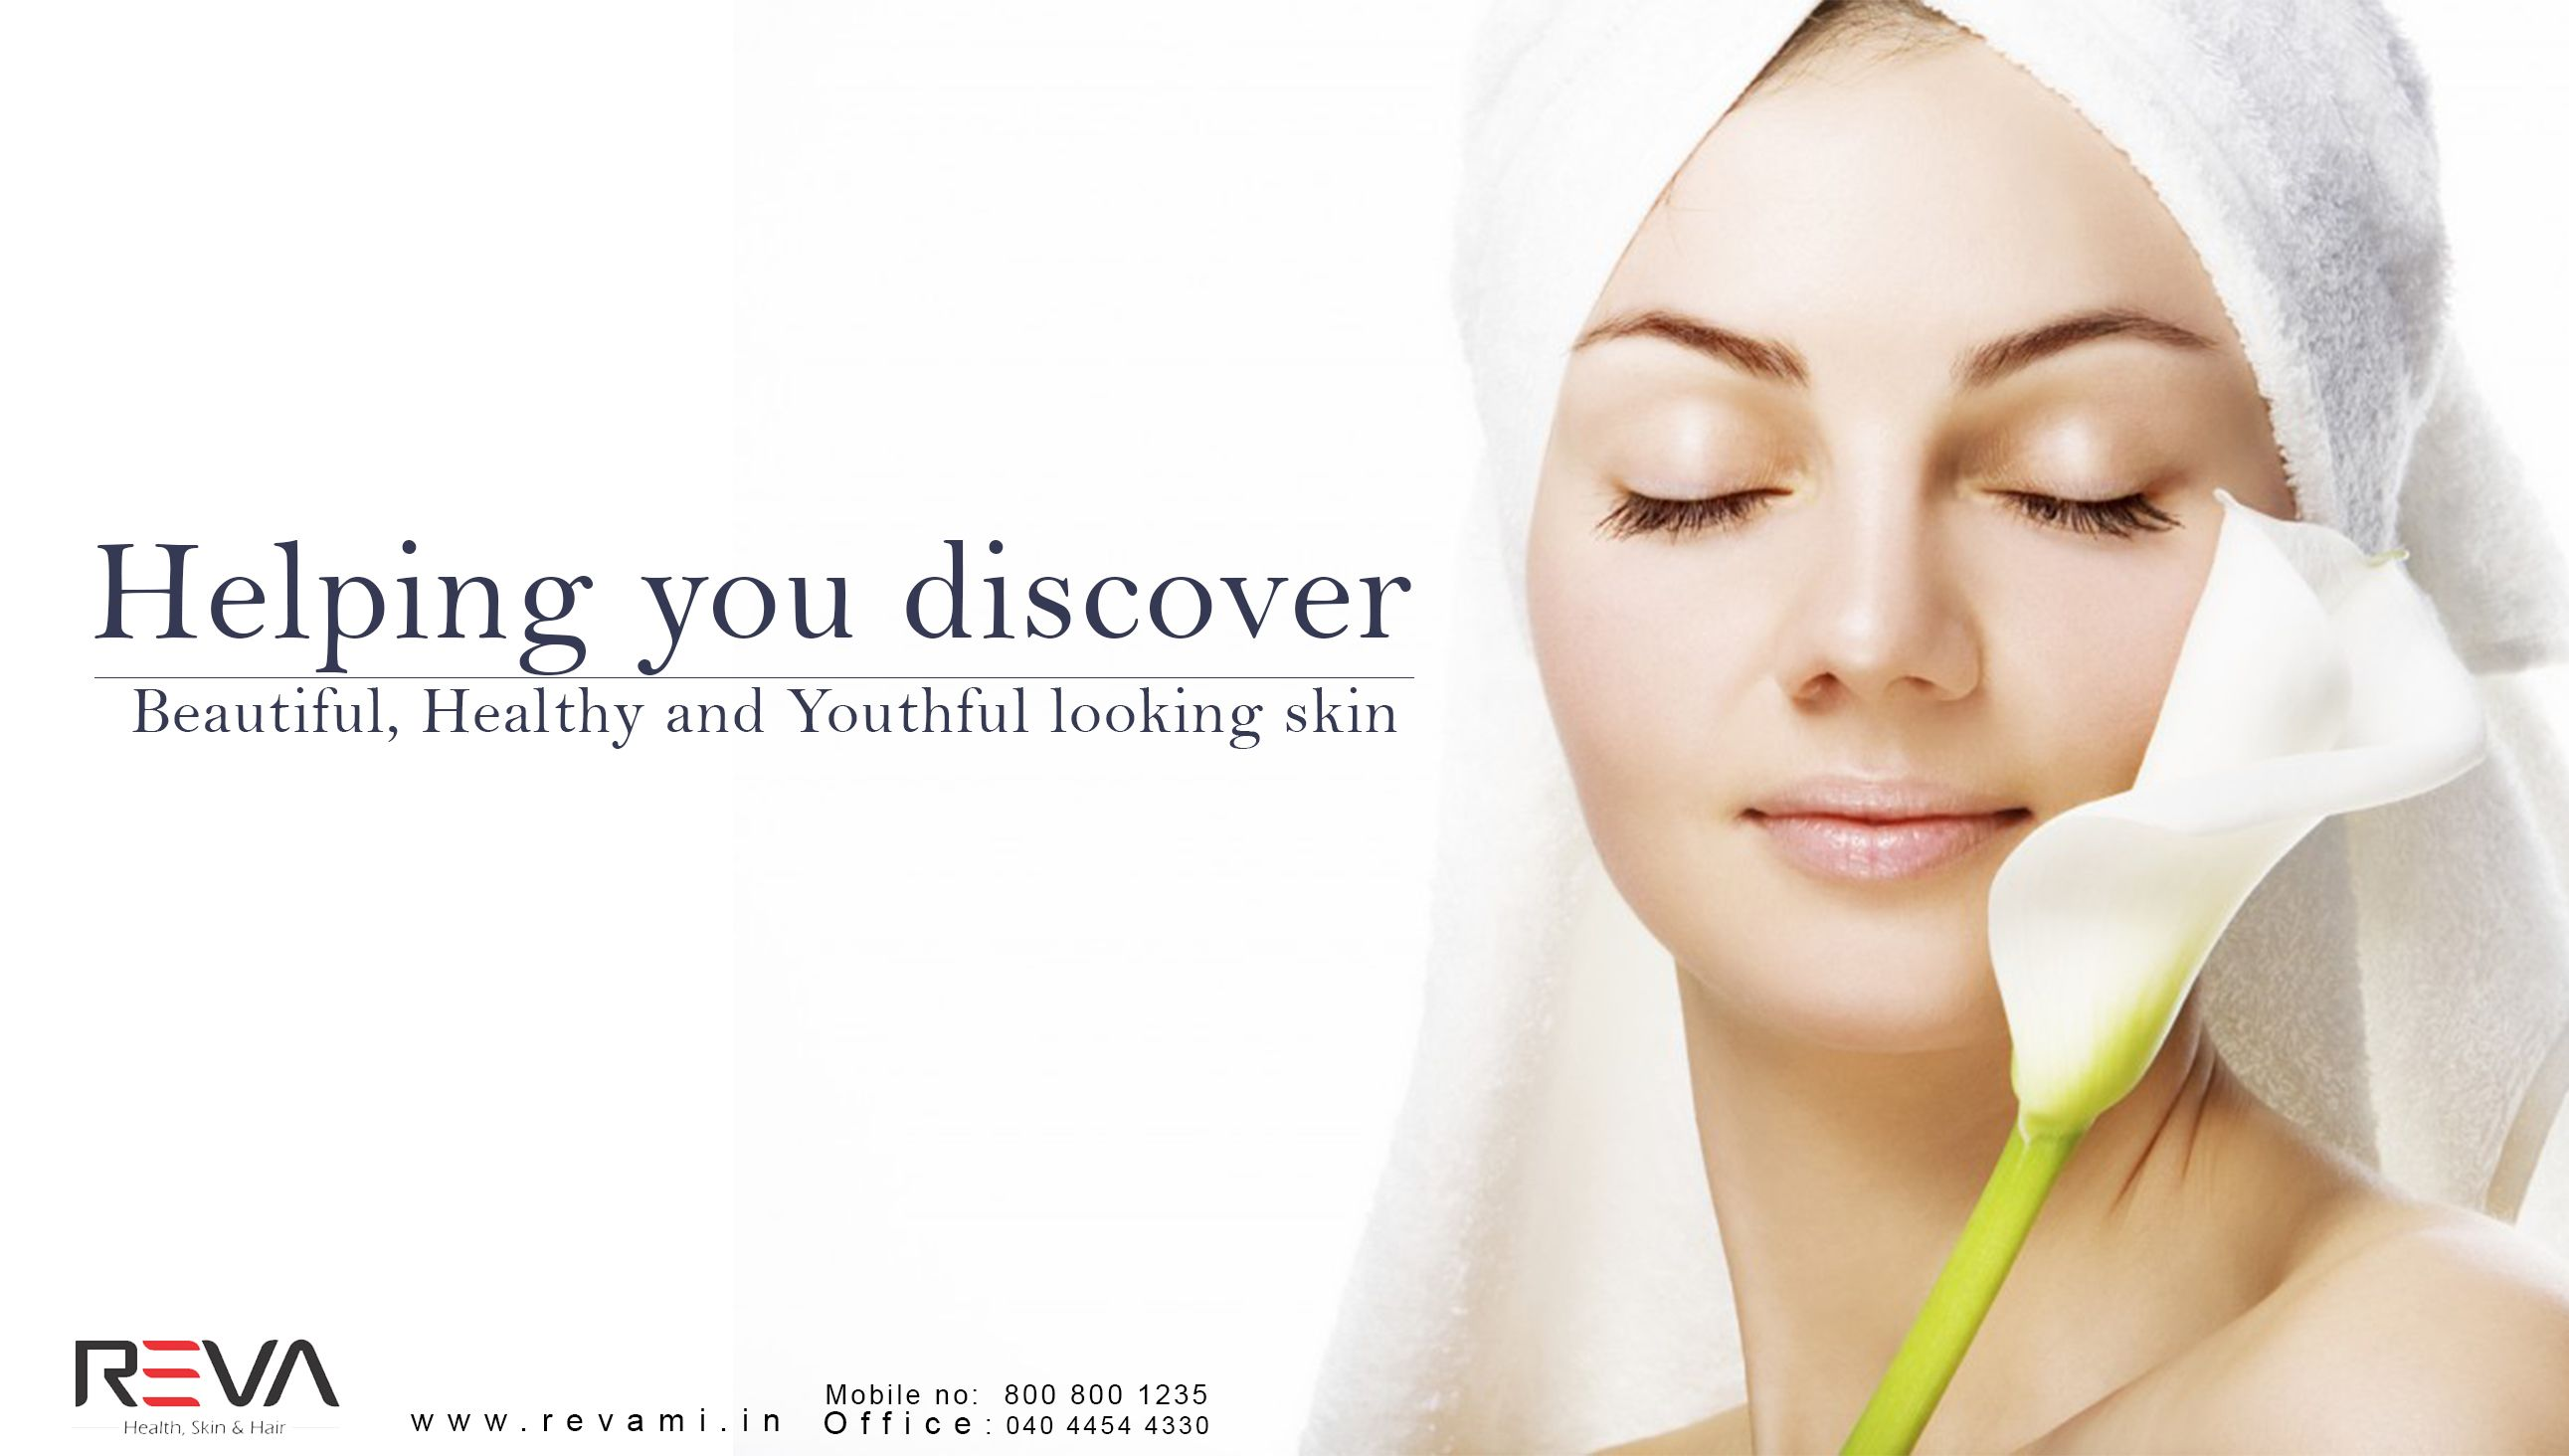 Helping you discover Beautiful, Healthy and Youthful